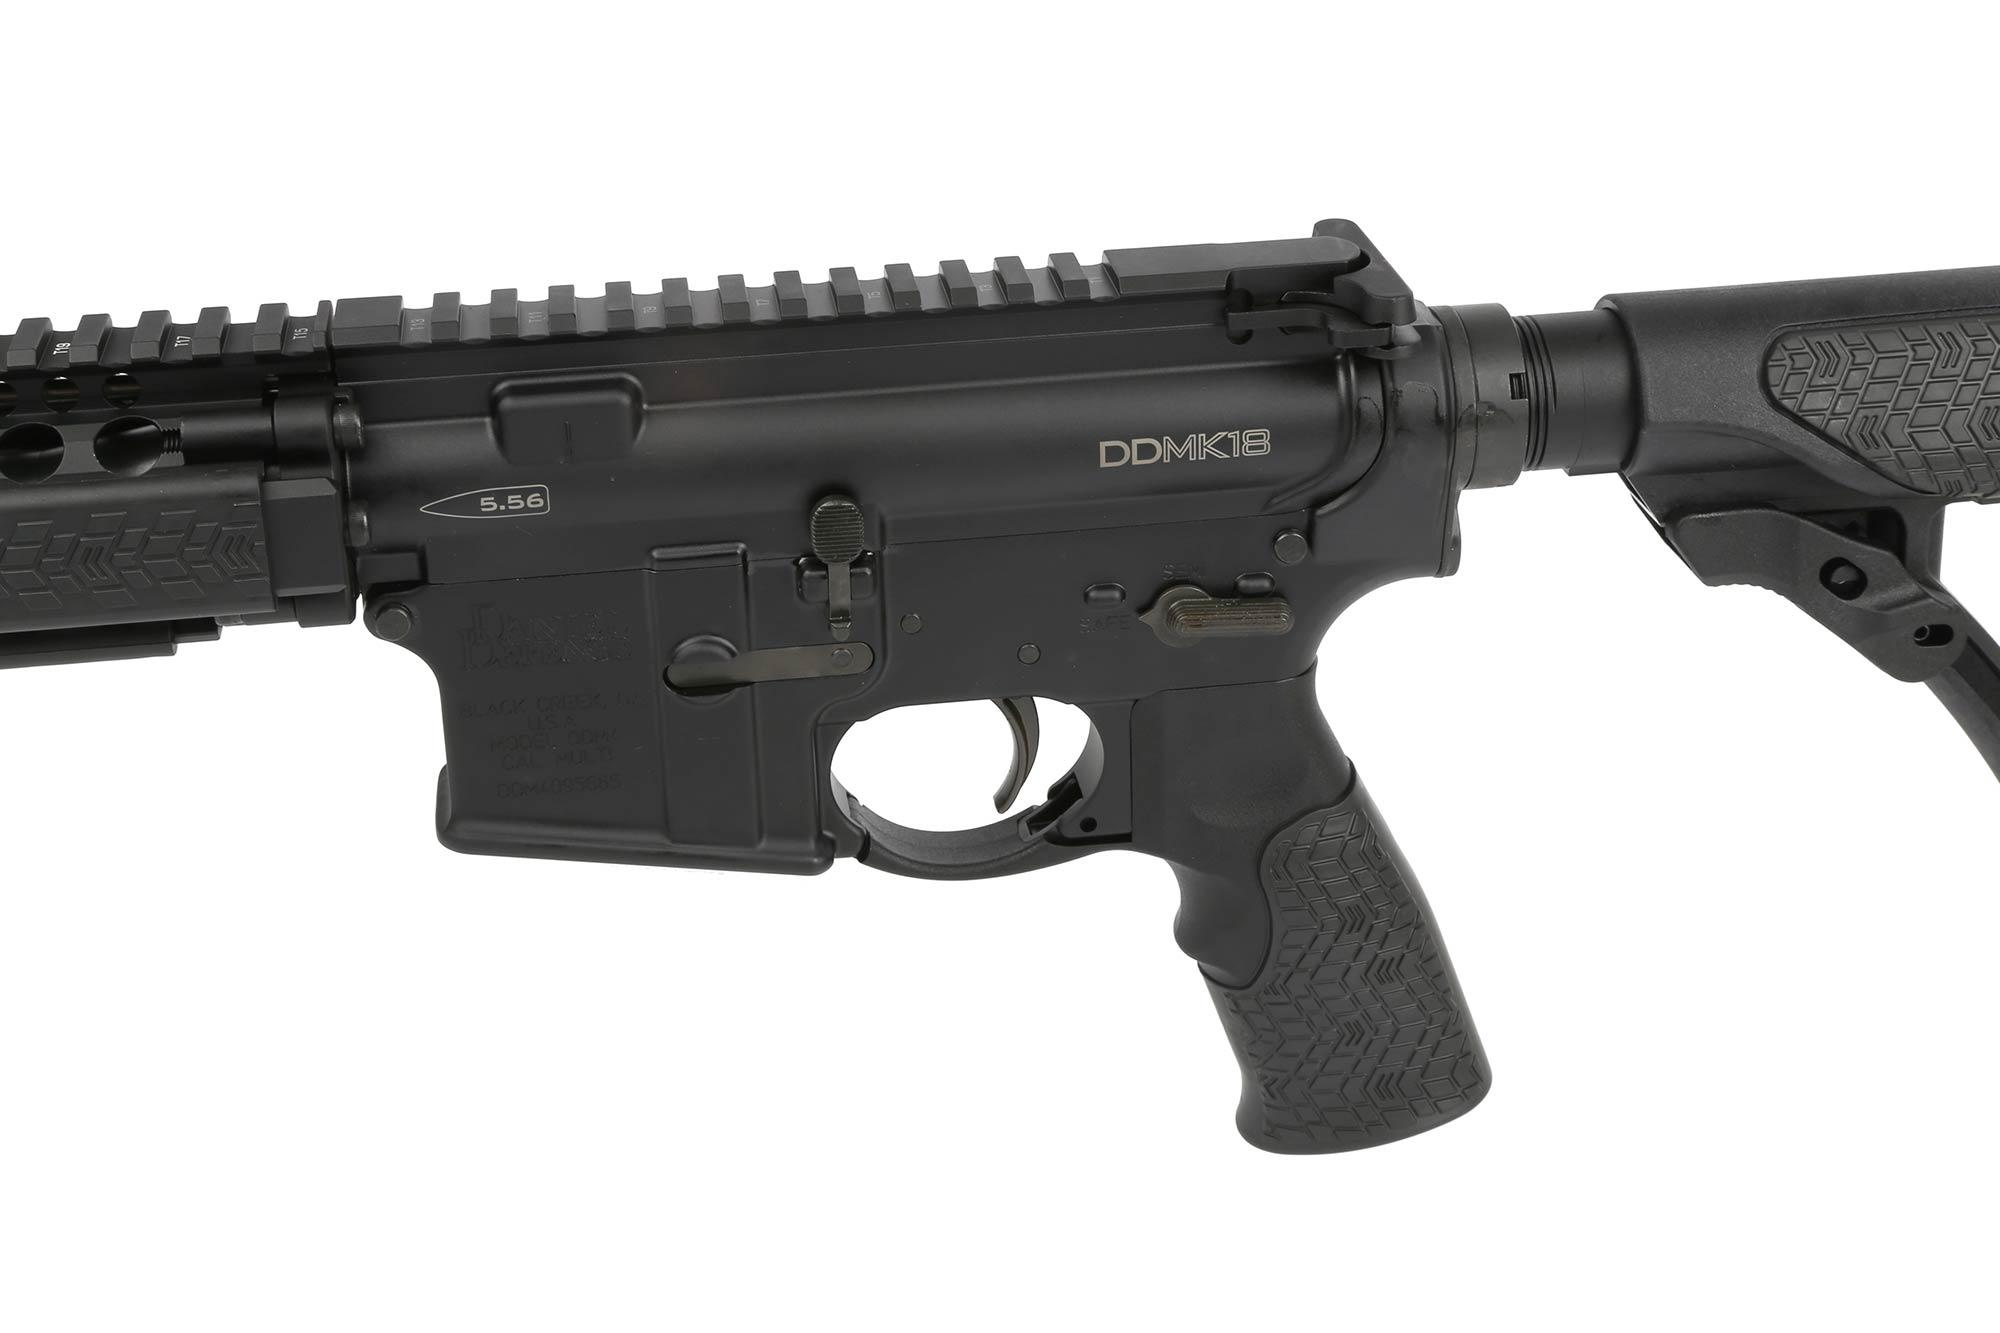 The DD MK18 AR 15 5.56 comes with an ambidextrous safety selector